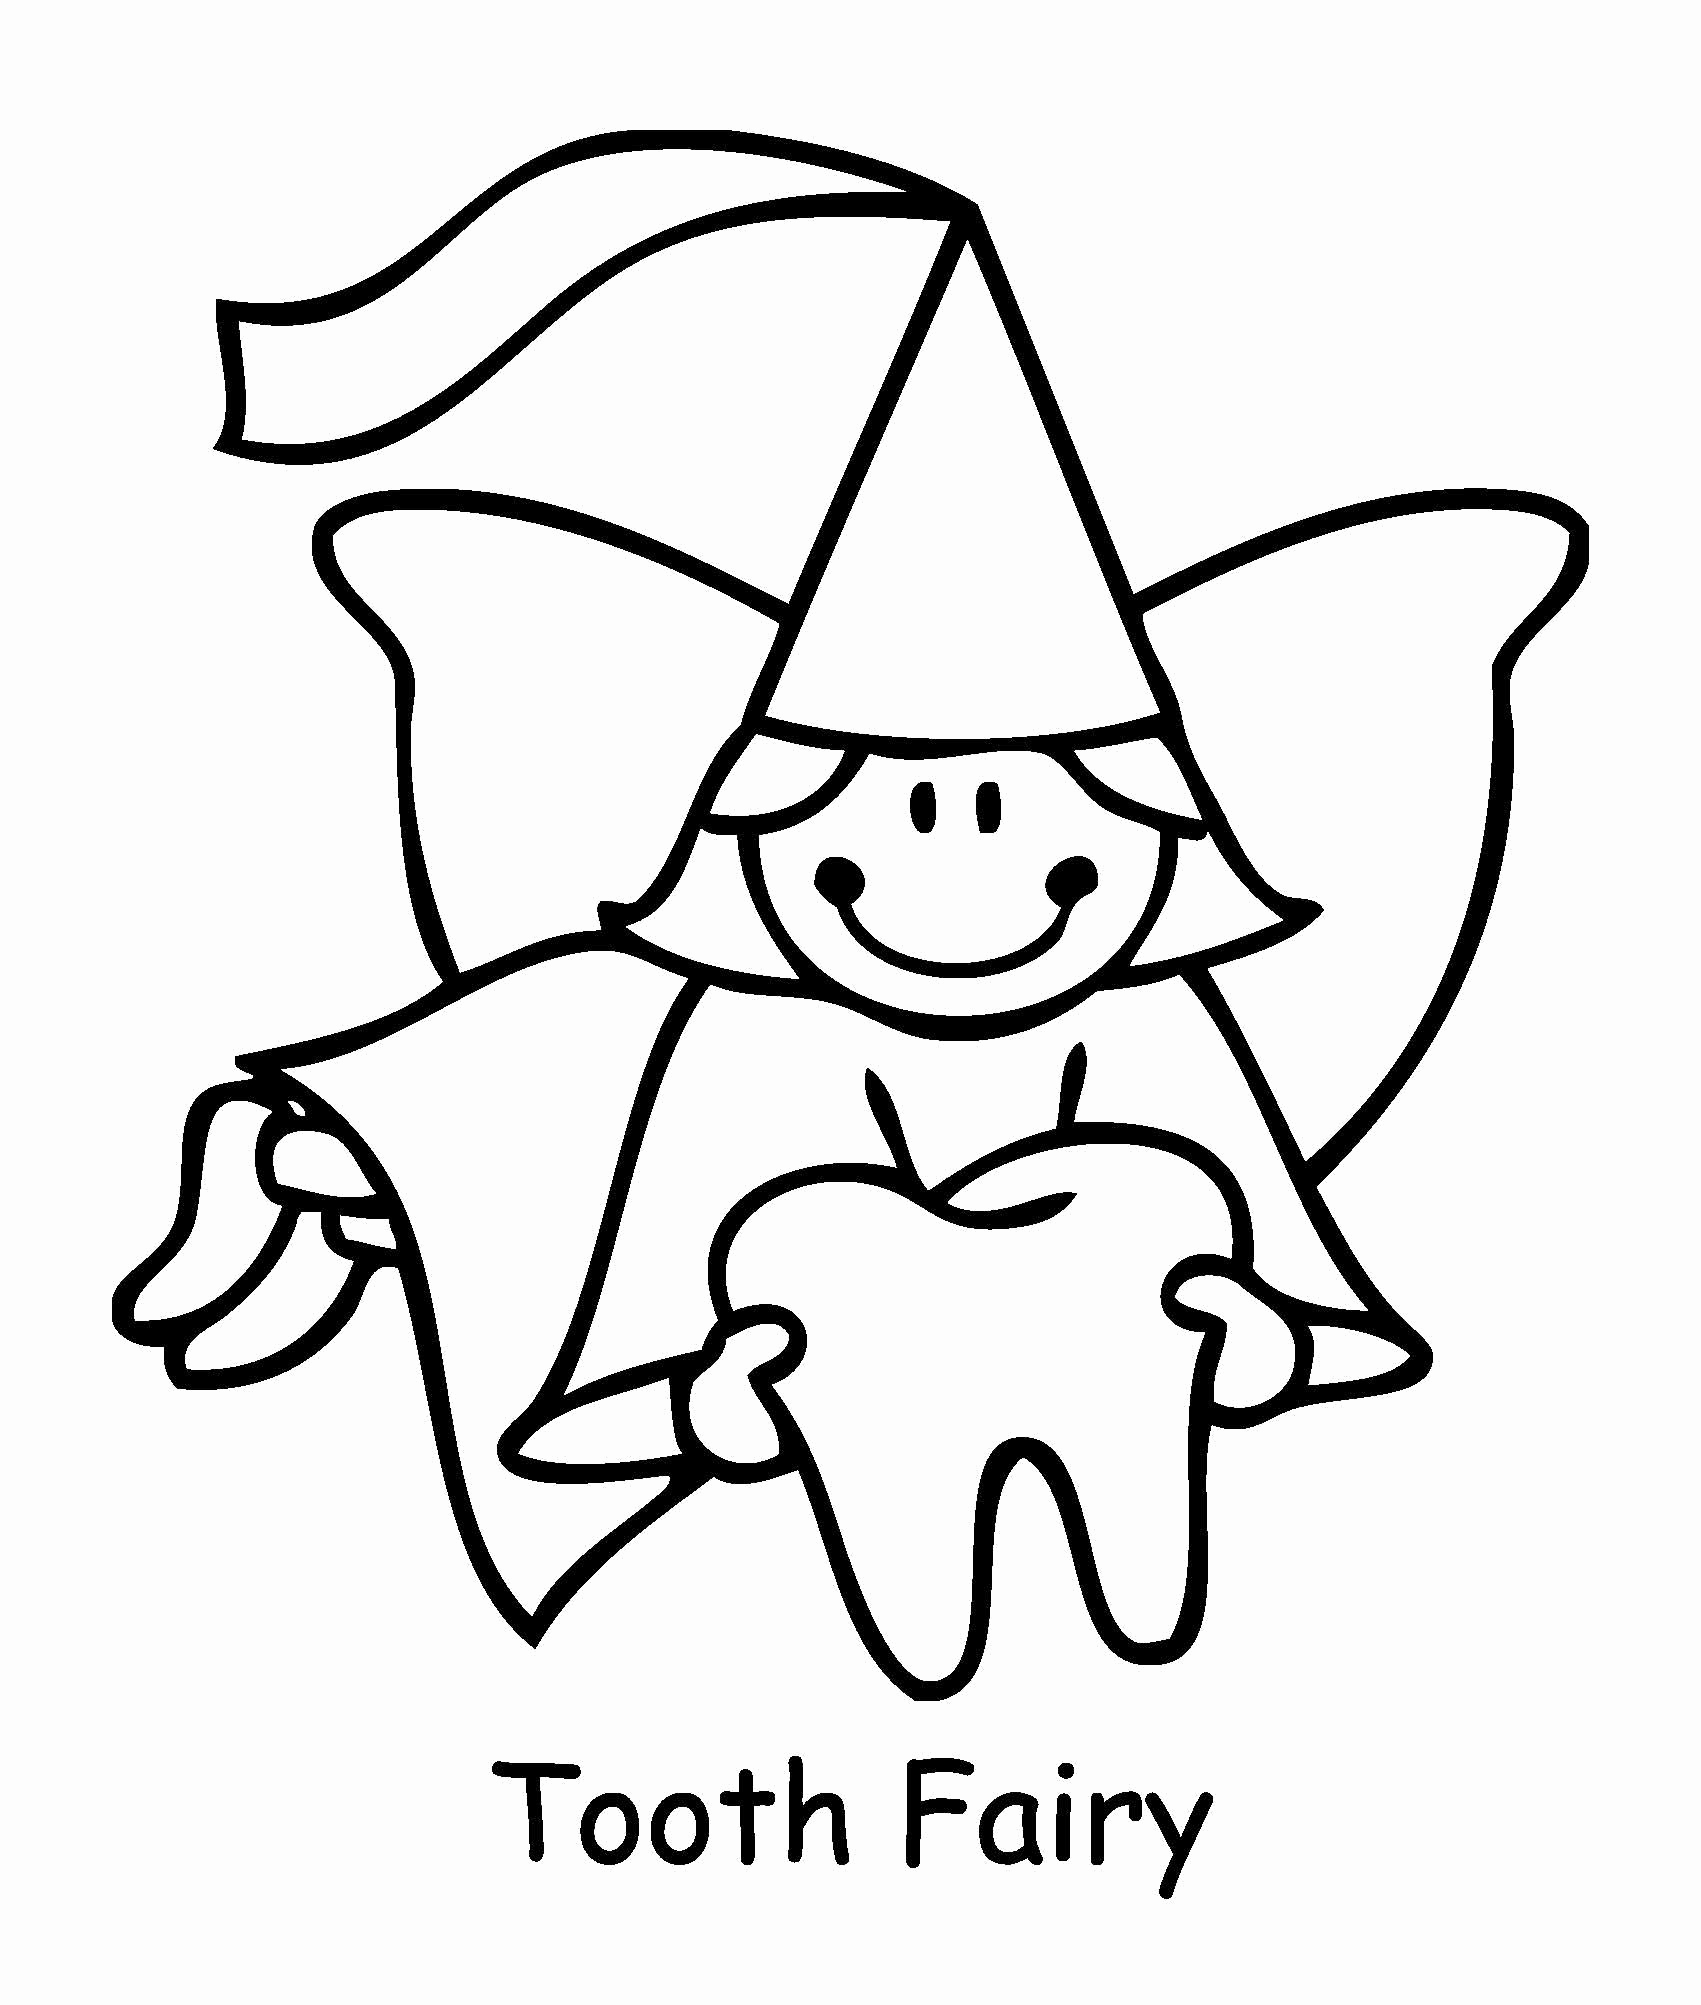 Dental Coloring Pages Collection Teeth Coloring Pages Coloring to Print Of Latest Dental Health Coloring Sheets Healthy Pages My Plate Dairy to Print